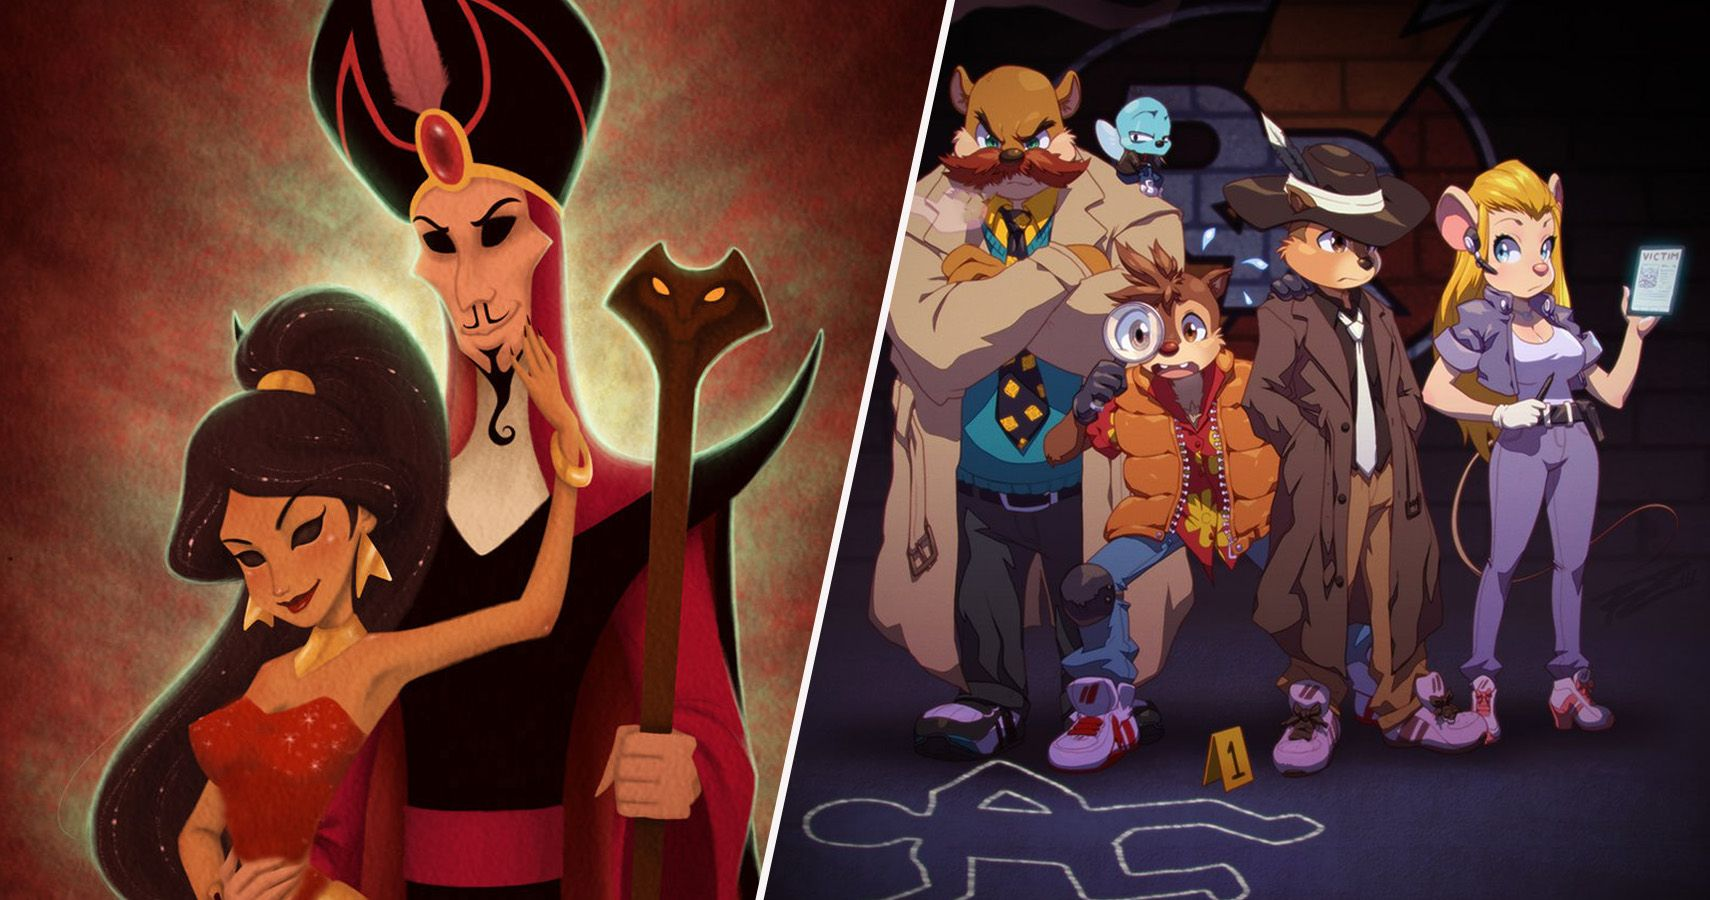 20 Disney Afternoon Characters Reimagined As Villains